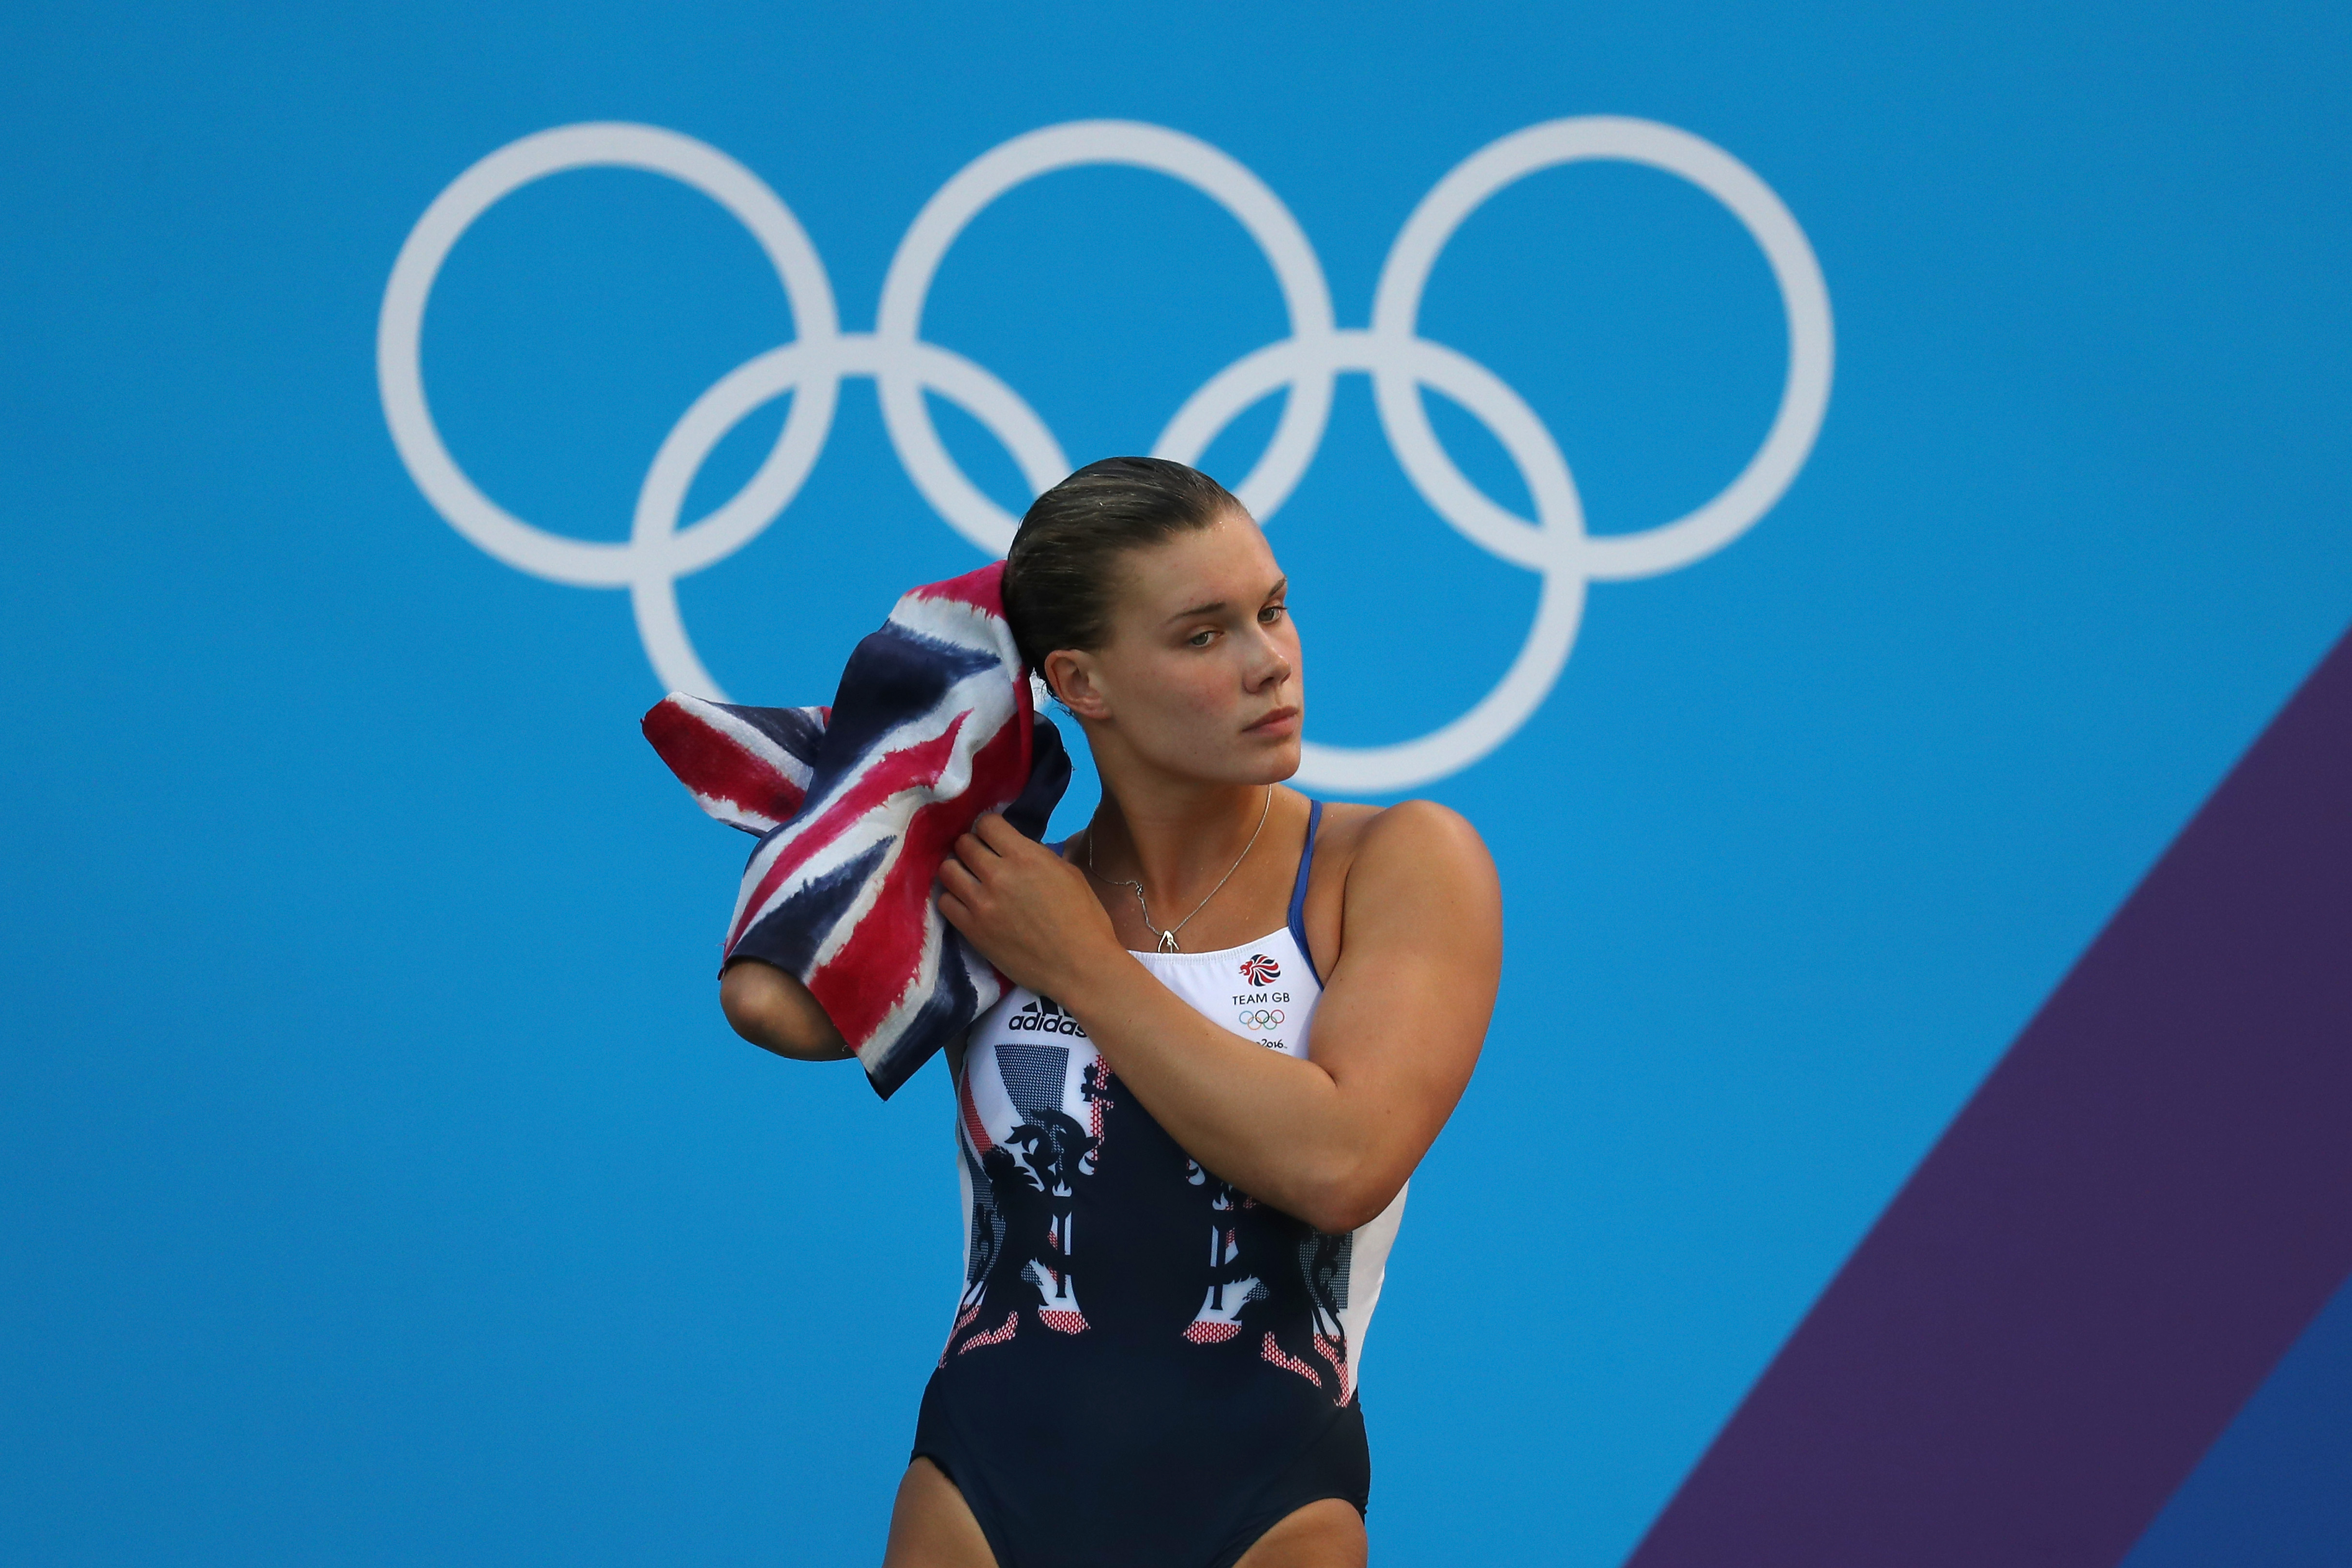 Grace Reid of Great Britain on Day 8 of the Rio 2016 Olympic Games, on August 13, 2016.